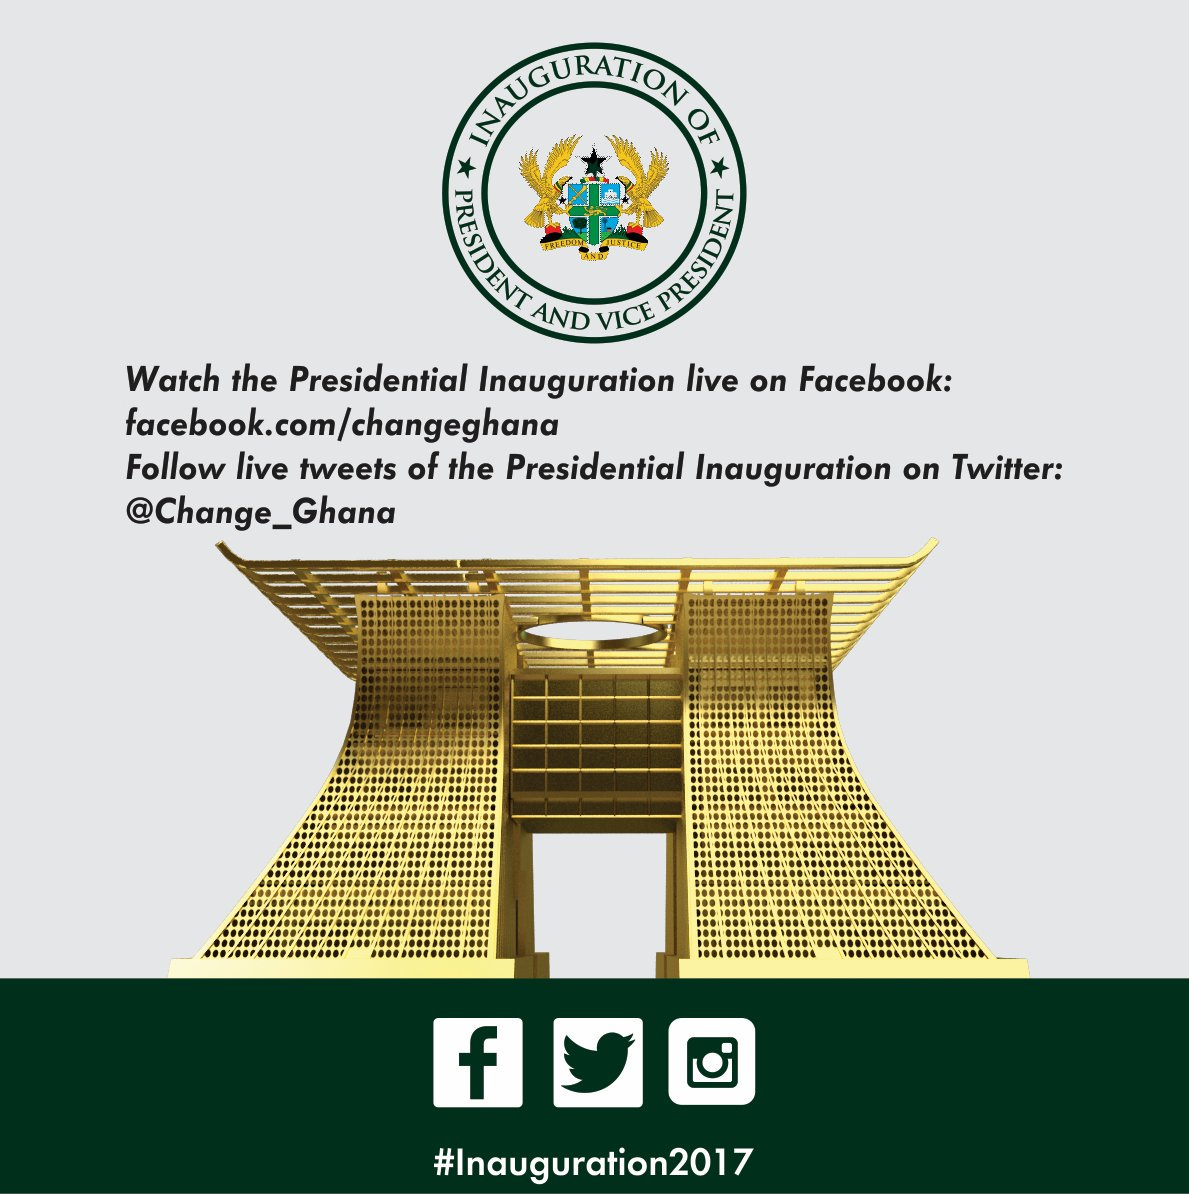 Follow live tweets of the Presidential Inauguration on Twitter: @Change_Ghana using the hashtag #Inauguration2017 https://t.co/WCK7CzDAPm